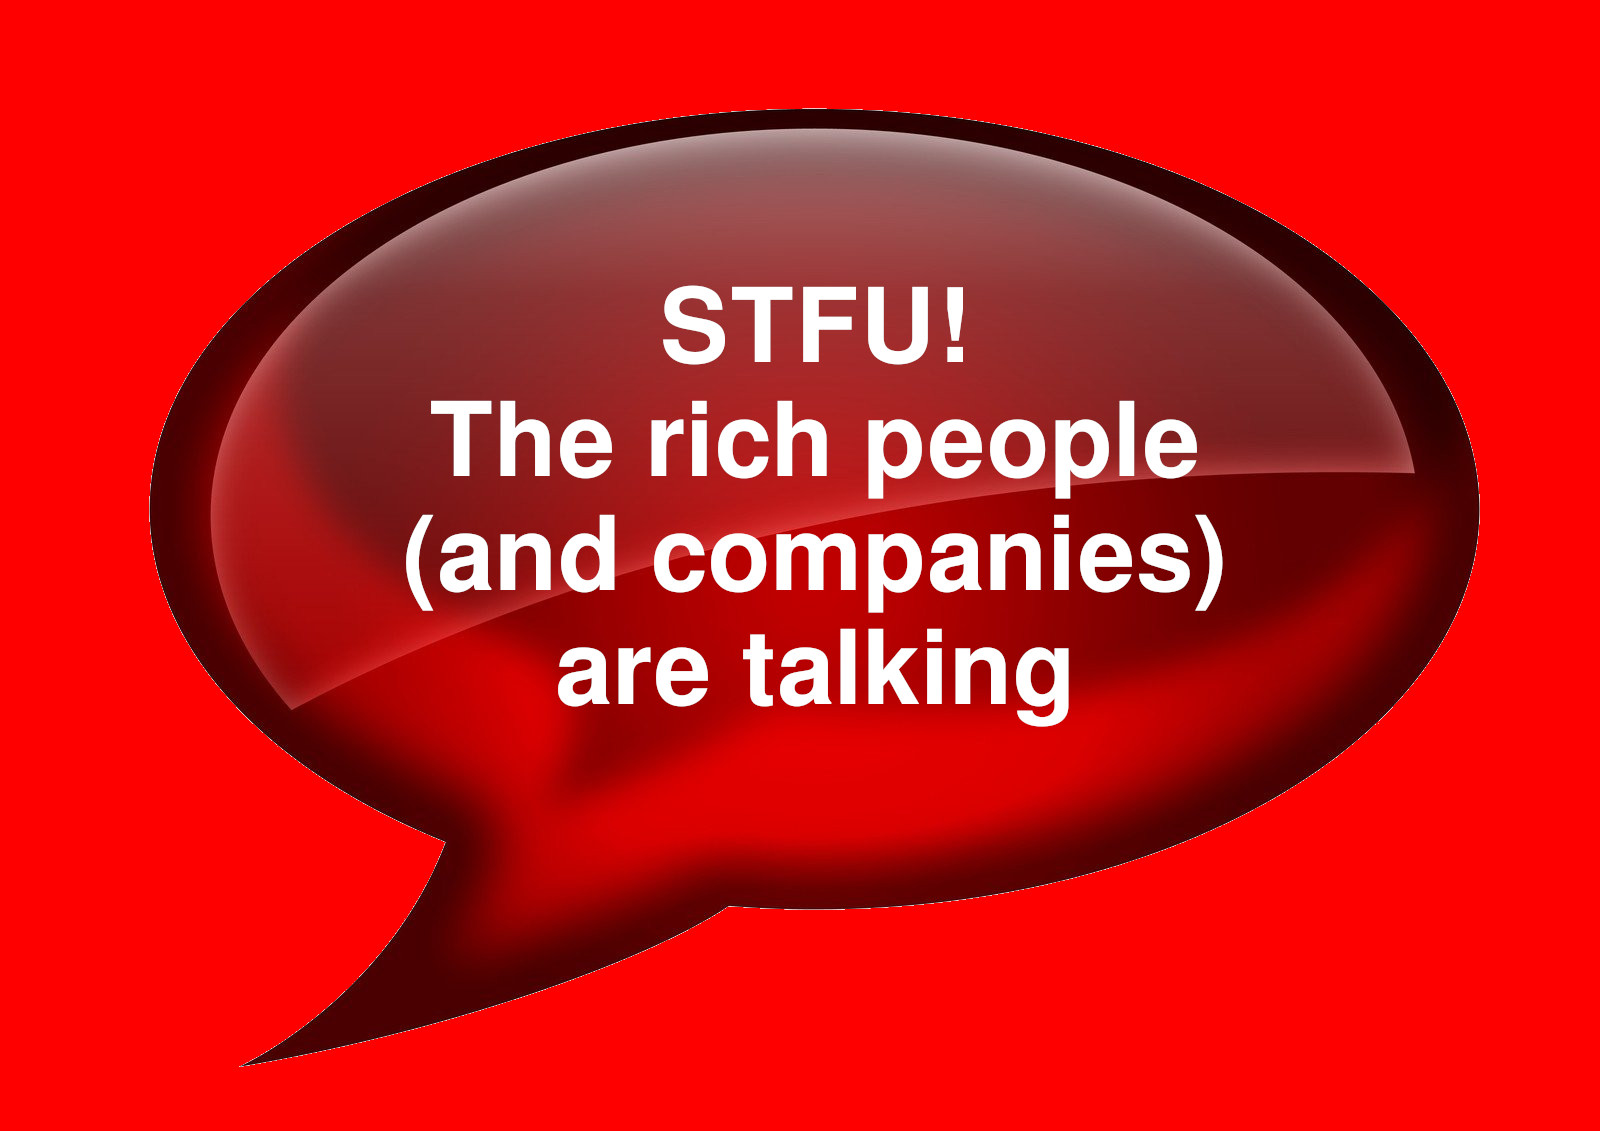 STFU! The rich people (and companies) are talking